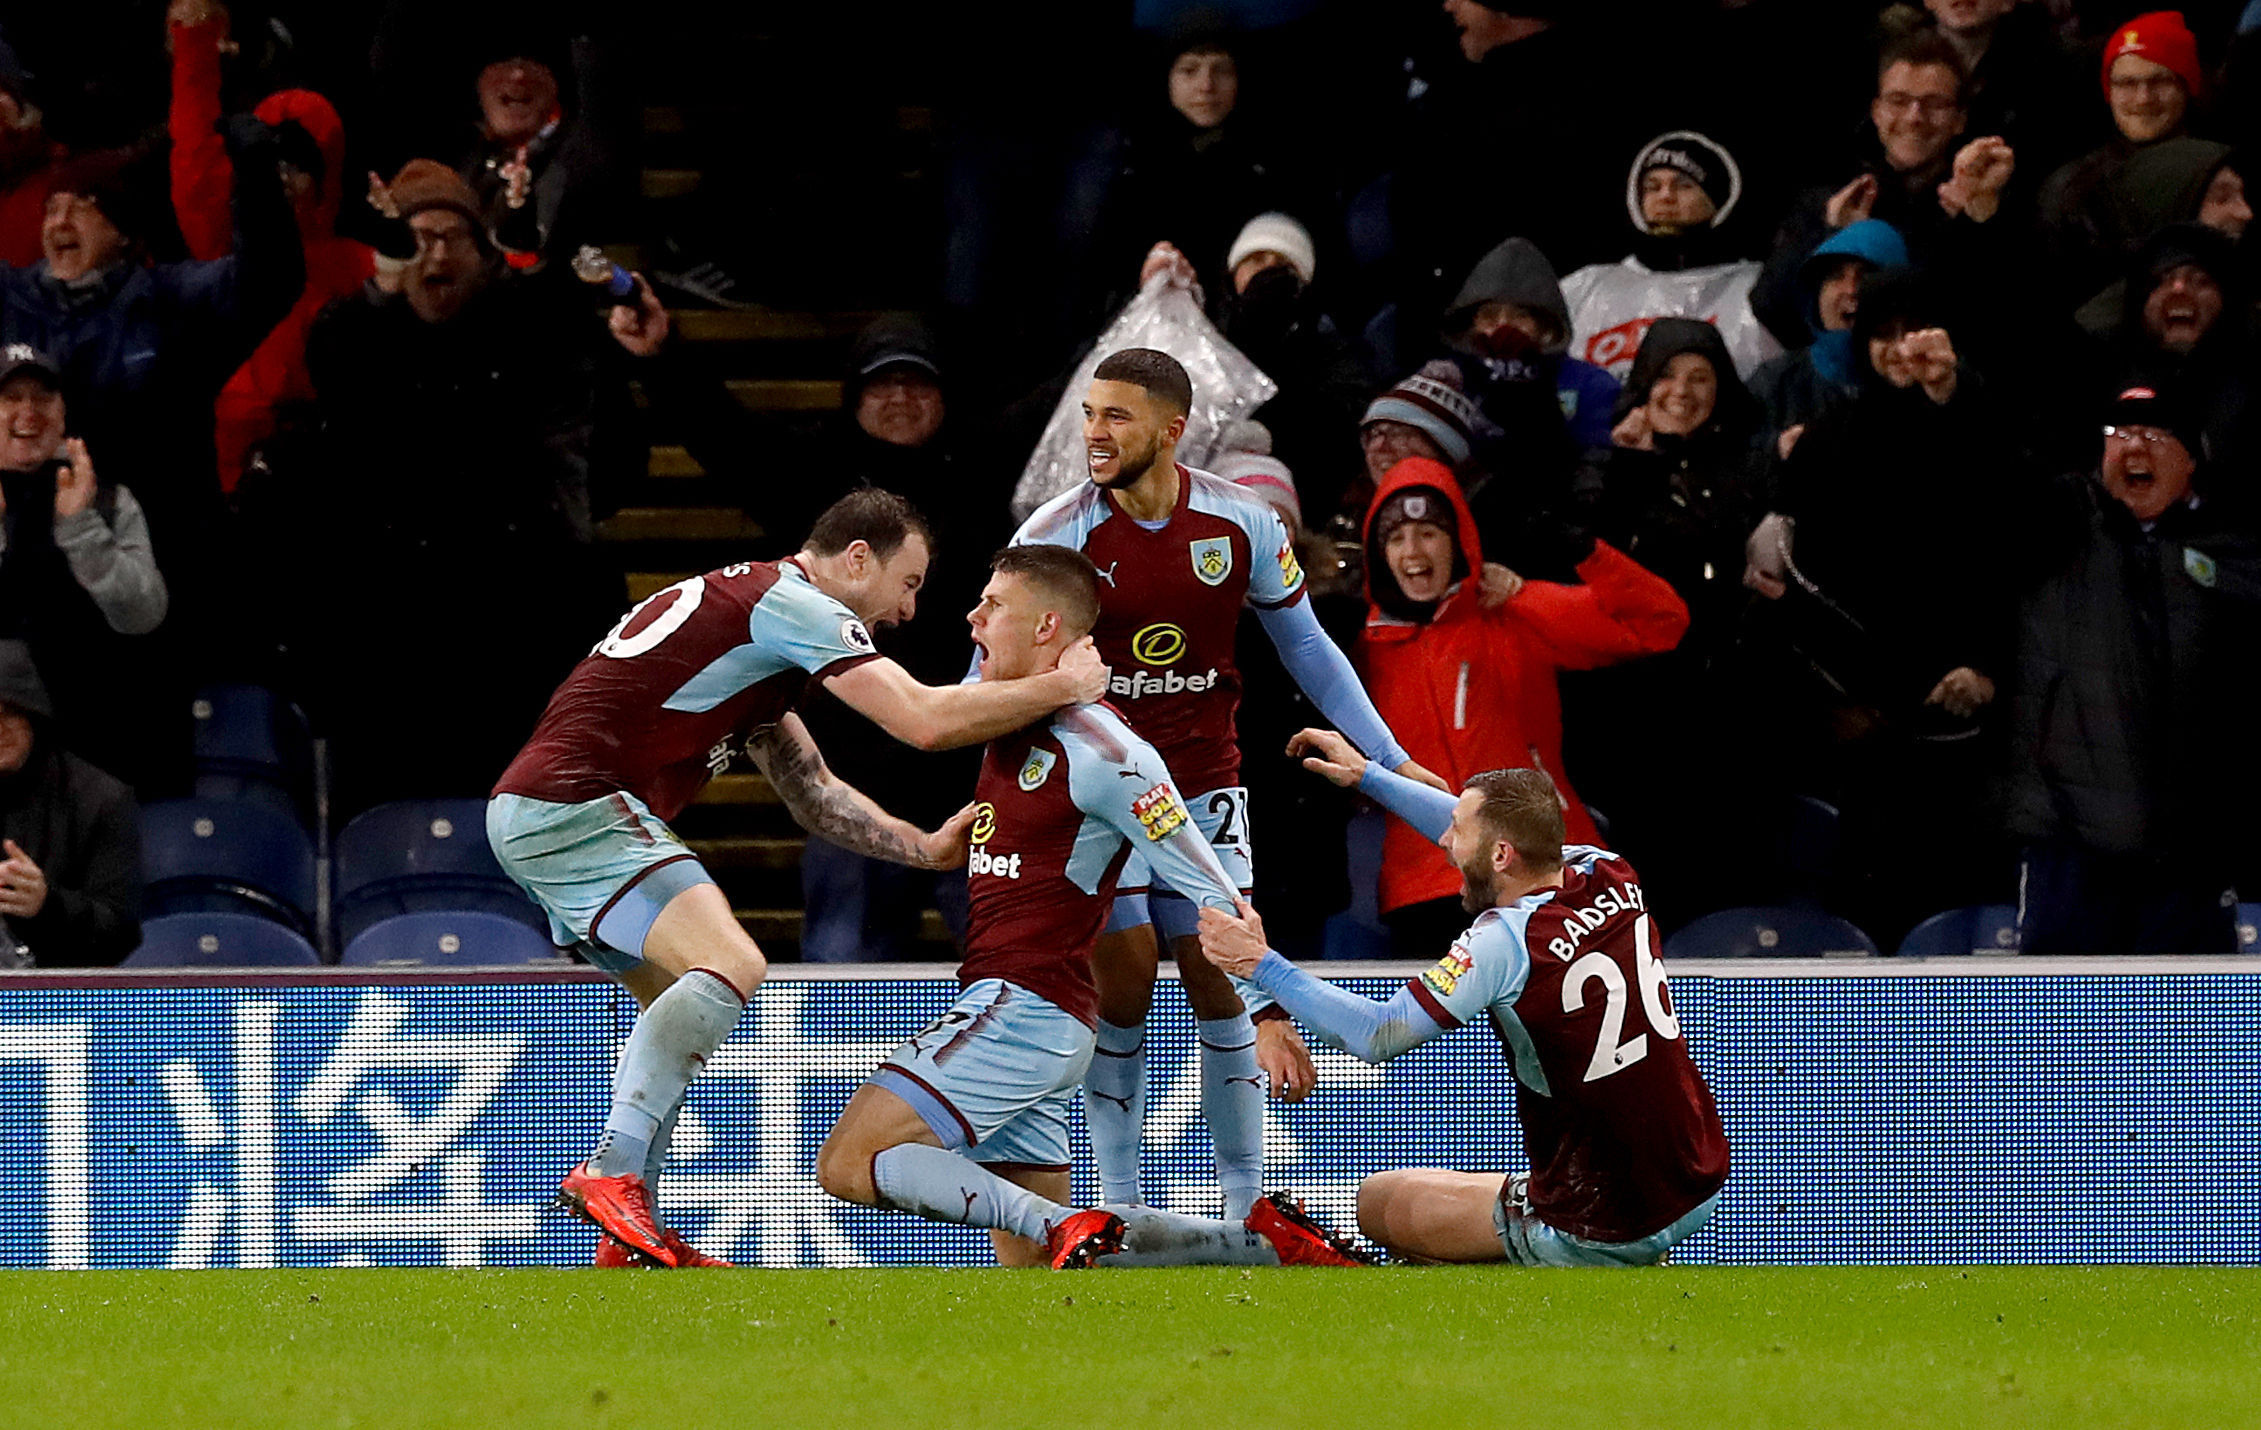 Burnley celebrate Johann Berg Gudmundsson's goal against Liverpool